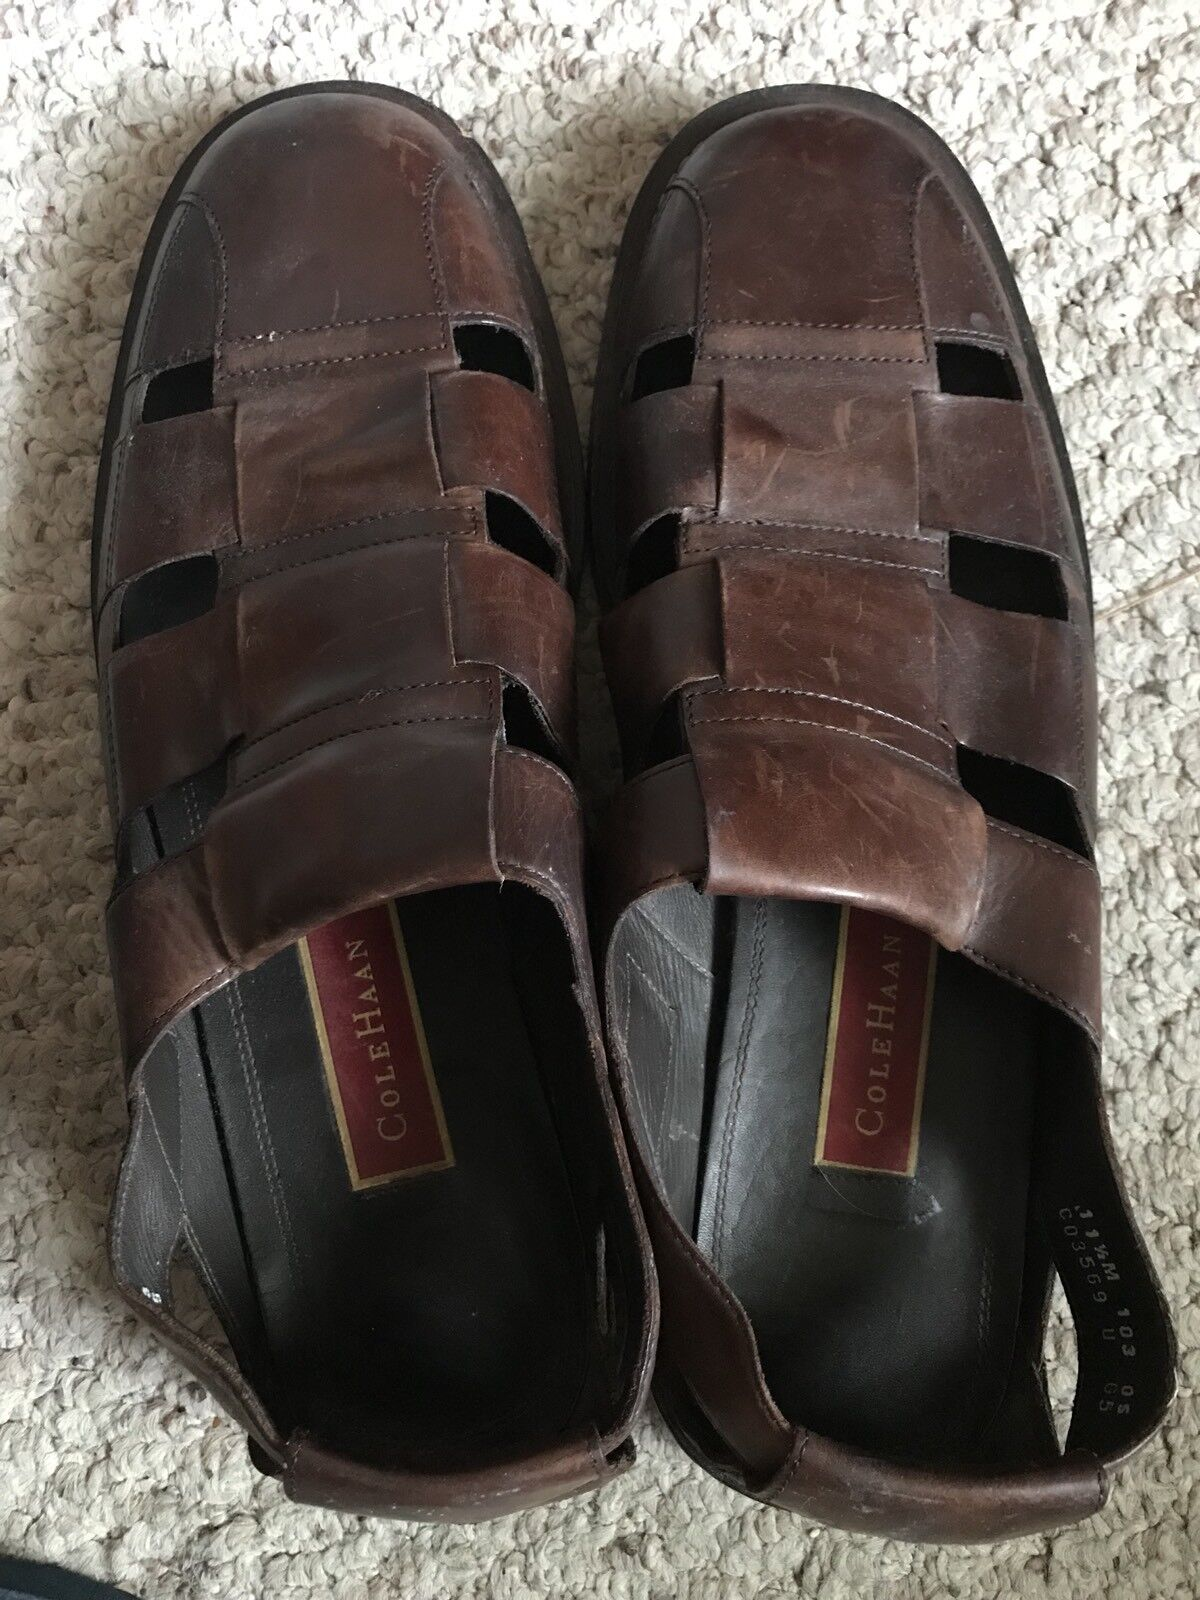 COLE HAAN Uomo's Brown Pelle Pelle Pelle FISHERMAN Sandals 11 1/2M f8bff4